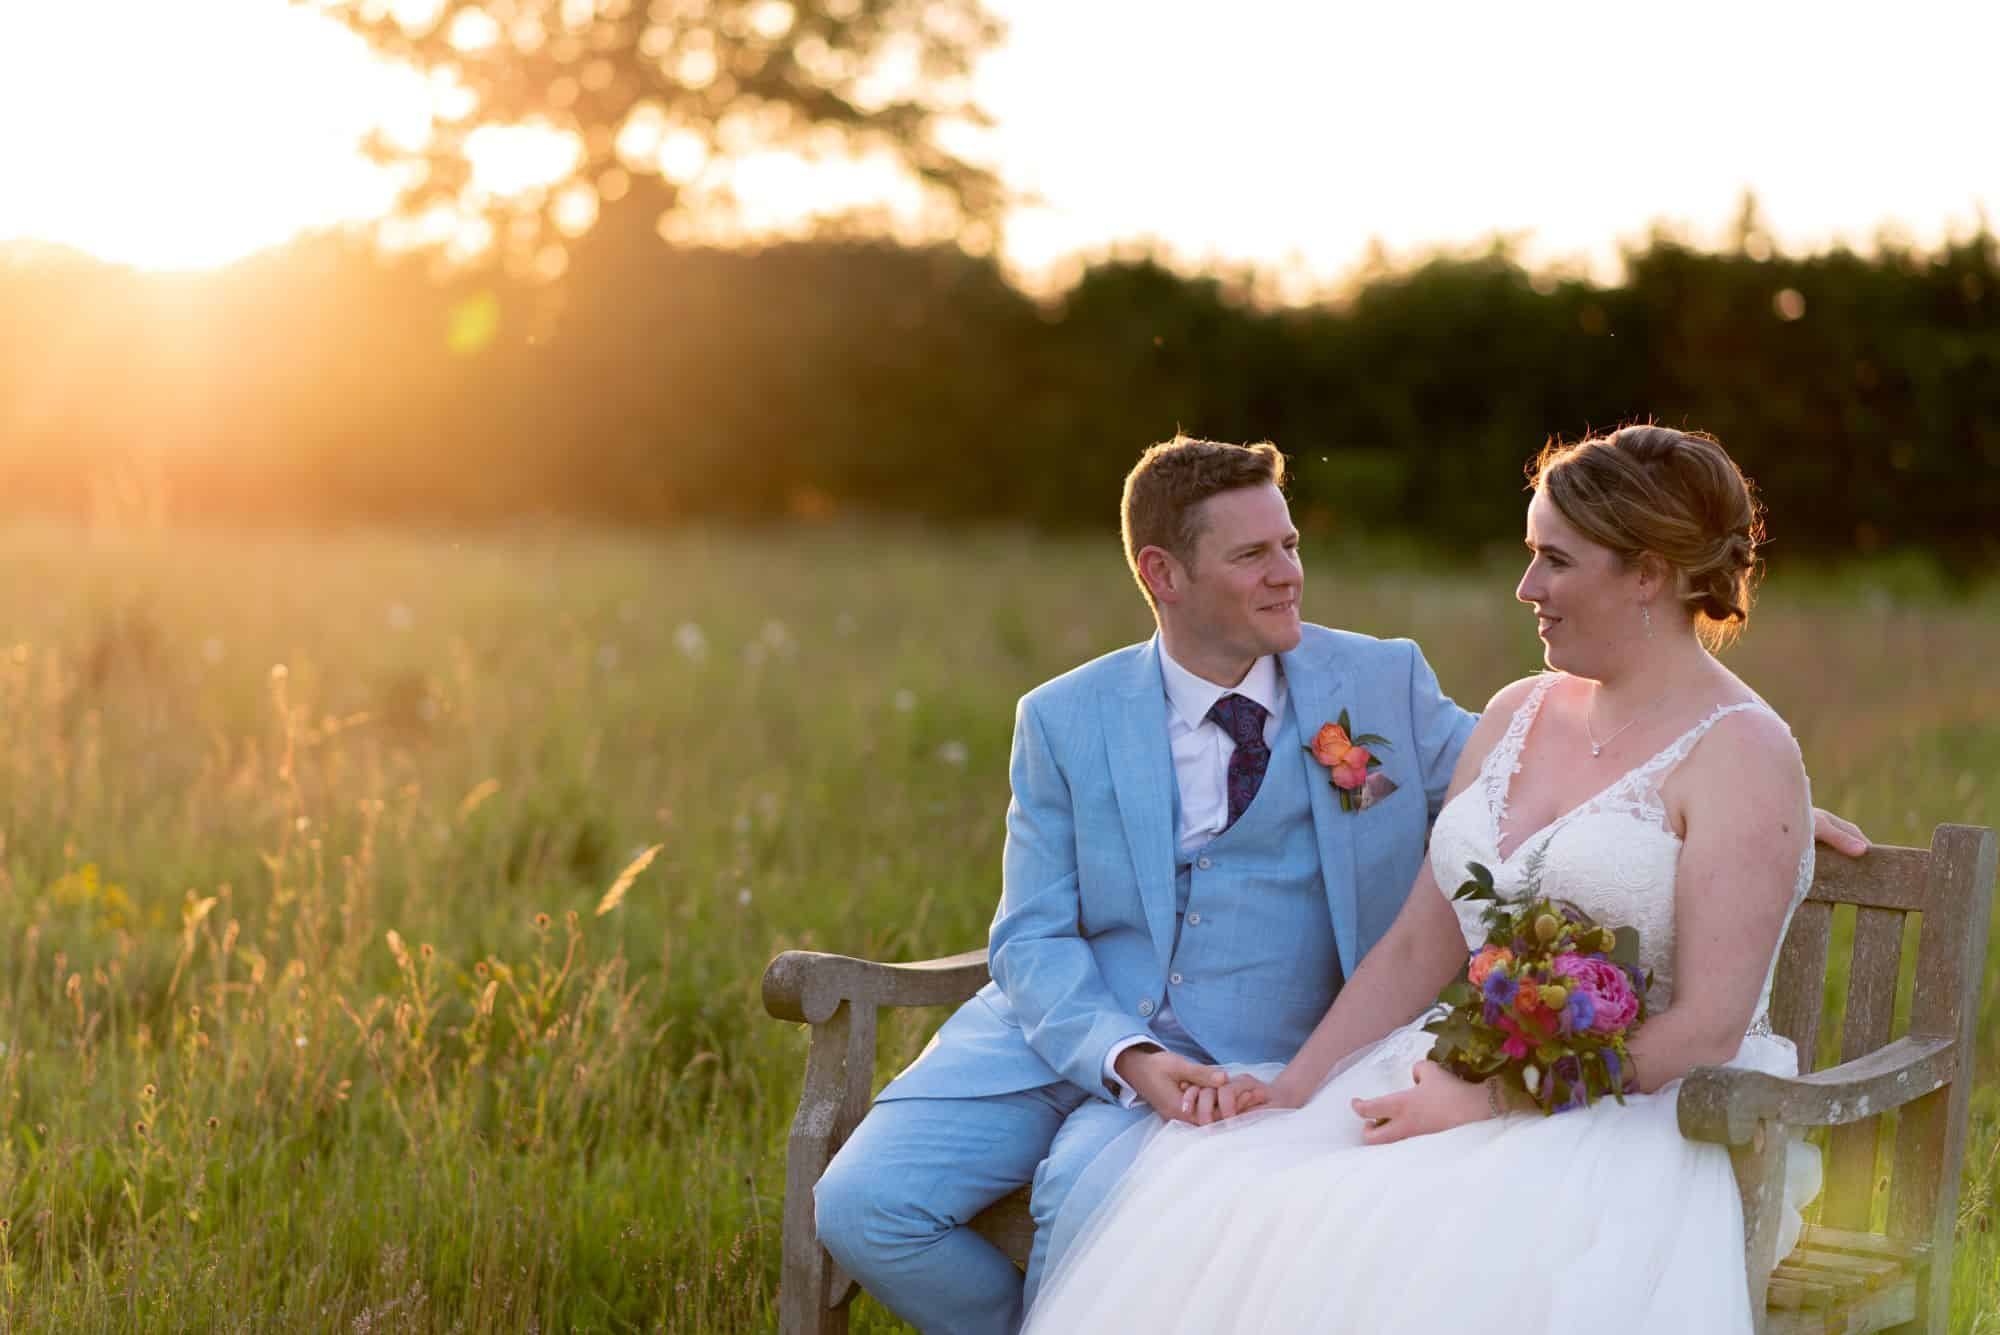 Sunset wedding photos at hawk Conservancy in Andover. Sat on a bench together for some relaxed and fun photos of their wedding day. Such a romantic shot